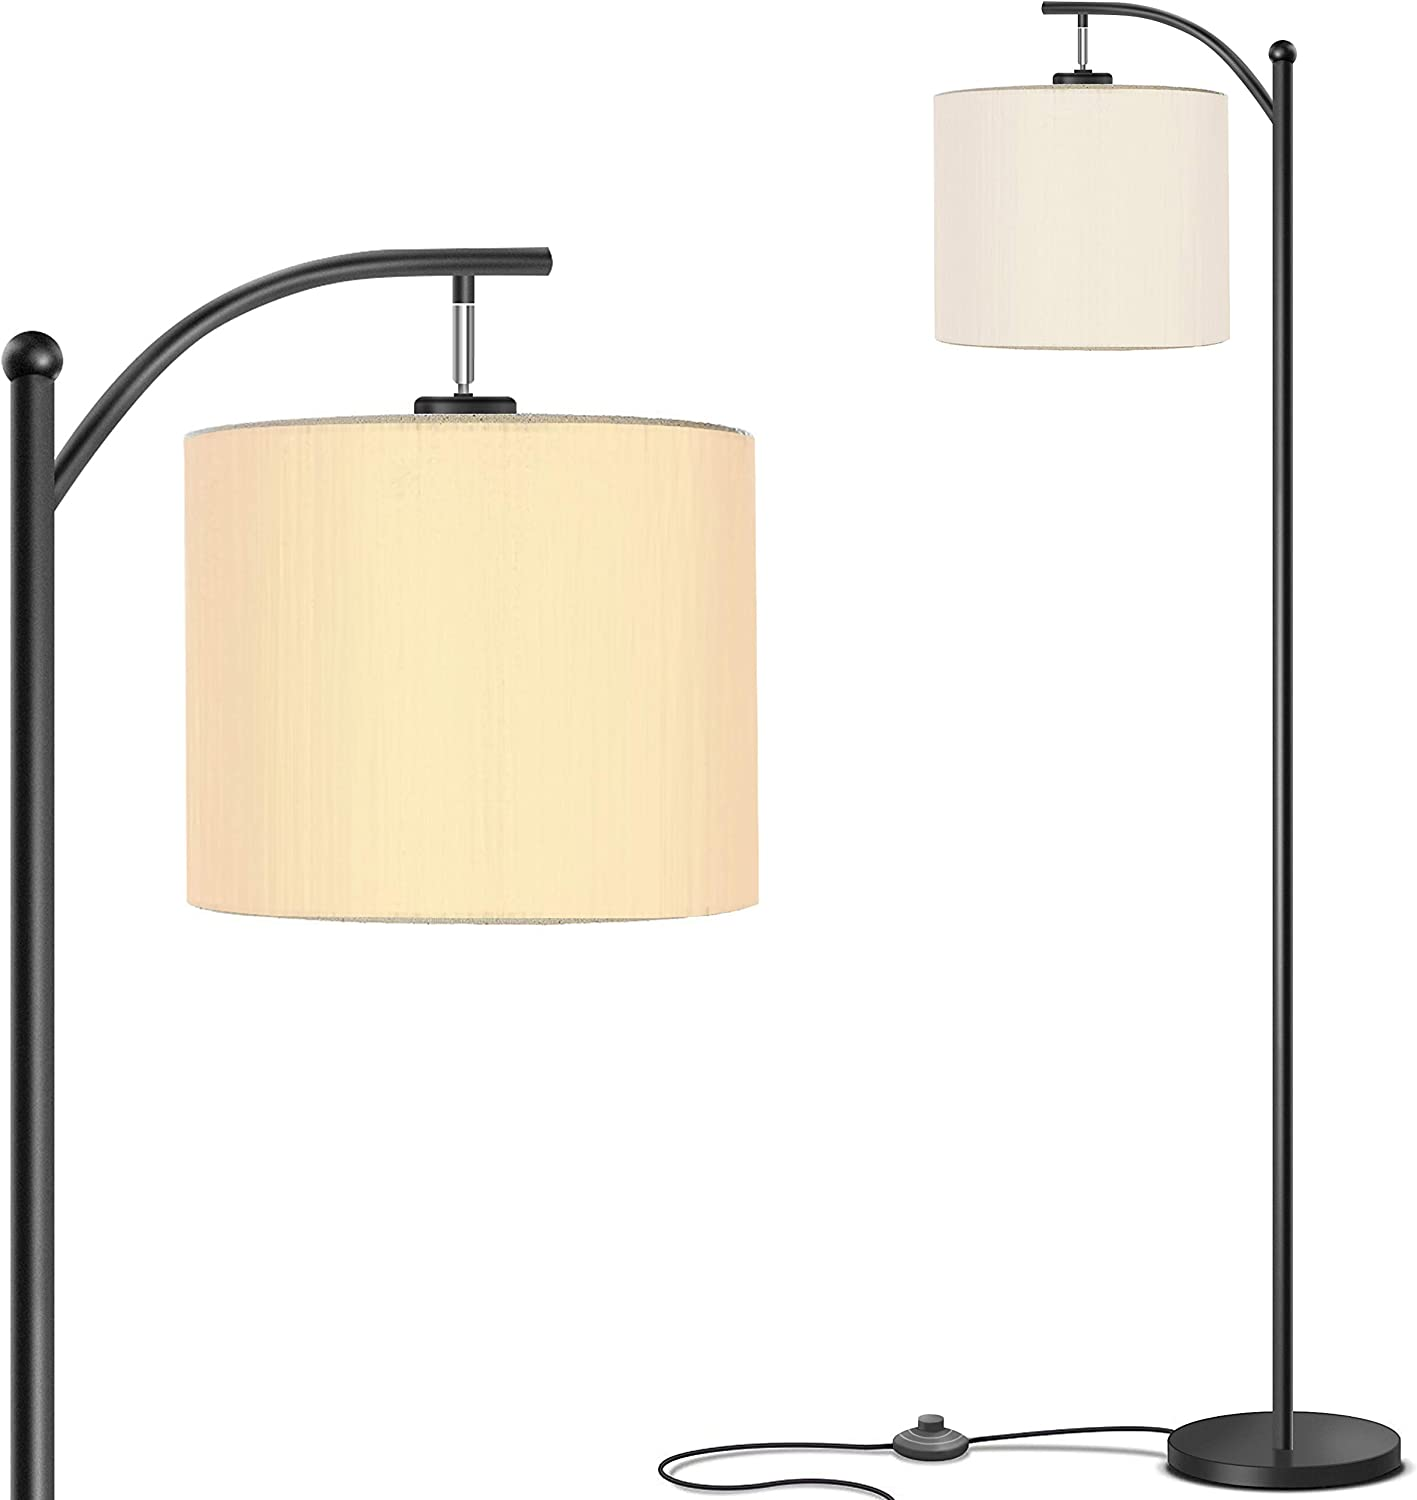 Addlon Floor Lamp for Living Room with Lamp Shade and 9W LED Bulb - Modern Standing Lamp - Floor Lamps for Bedrooms-Black